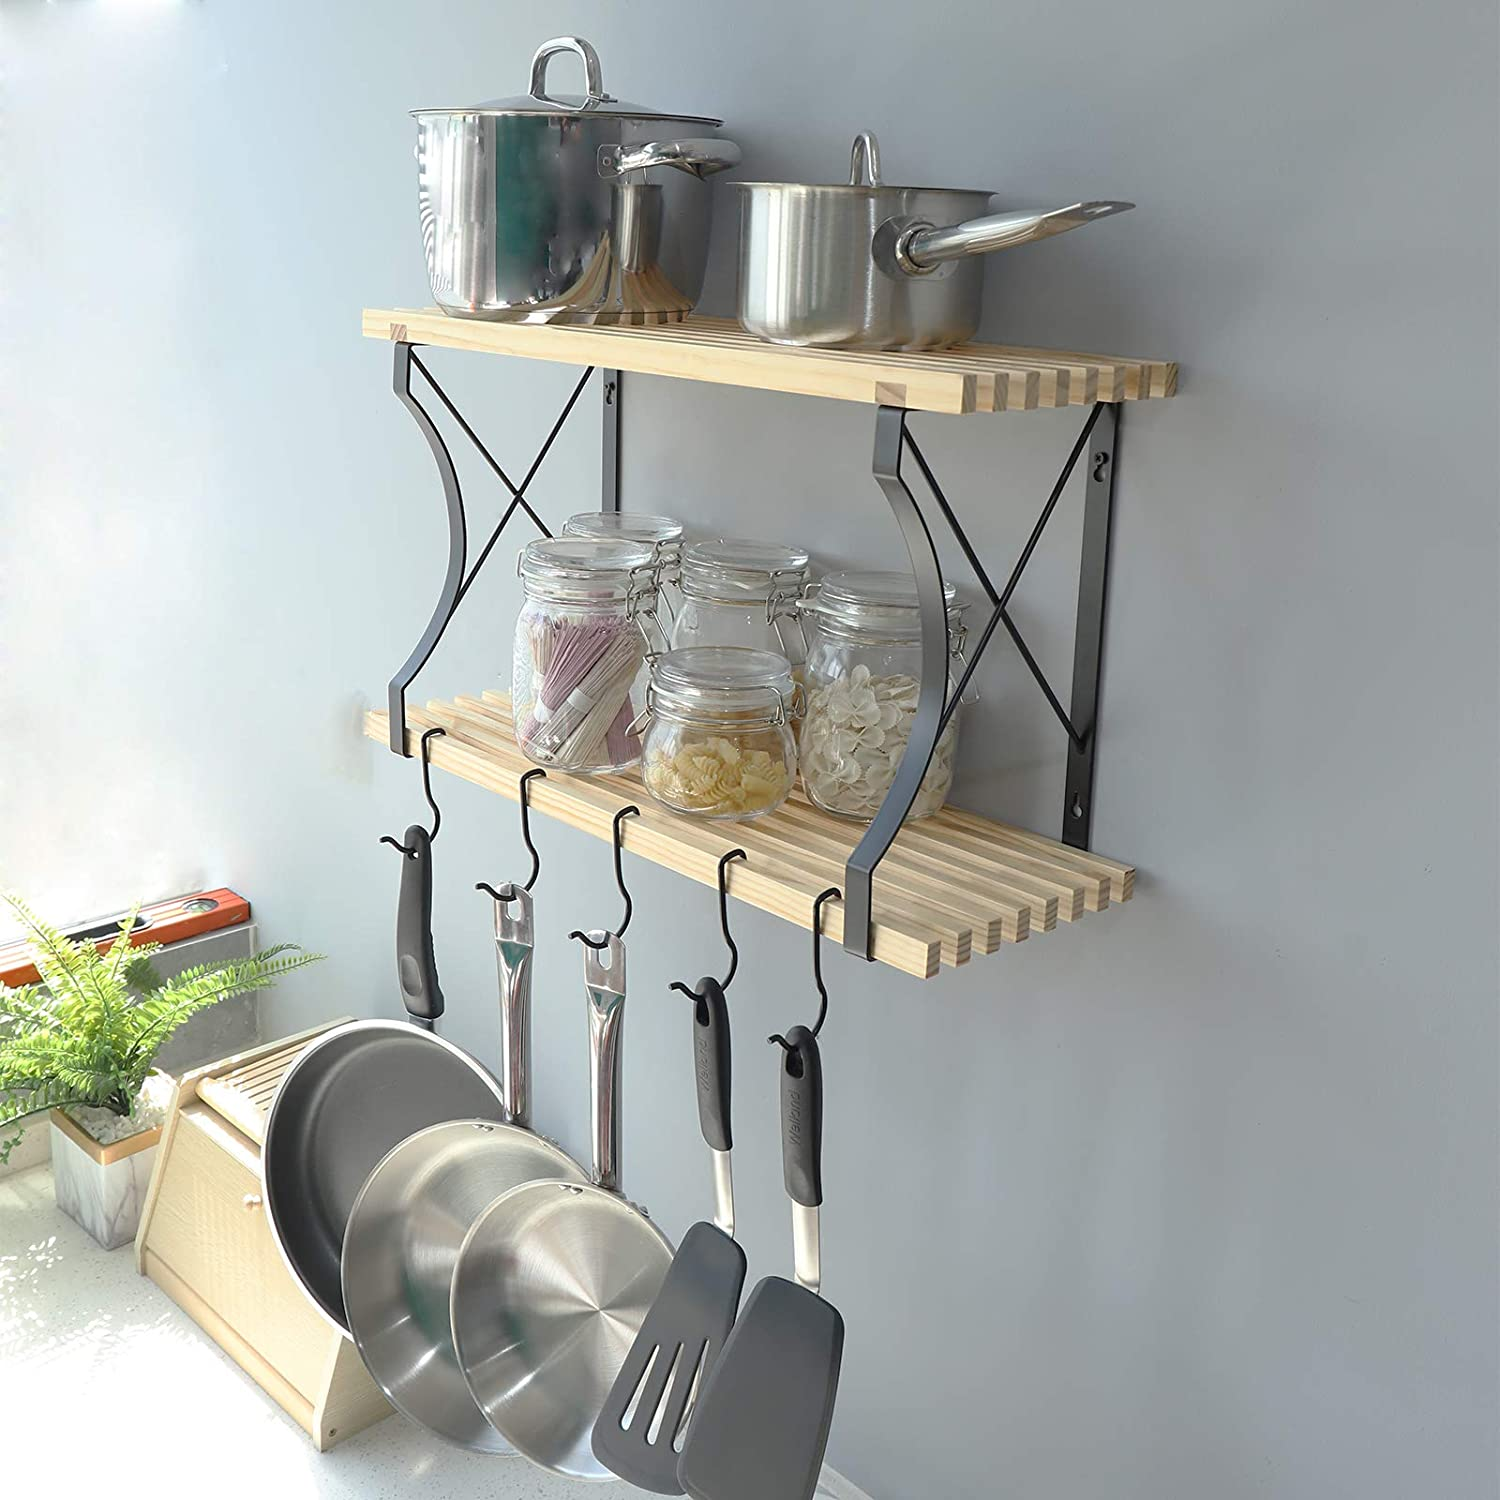 WELLAND 24x8.9 Limited time for free shipping Inches Wooden Pot Pan 2 W Rack Tier Taylor Shelf Max 67% OFF